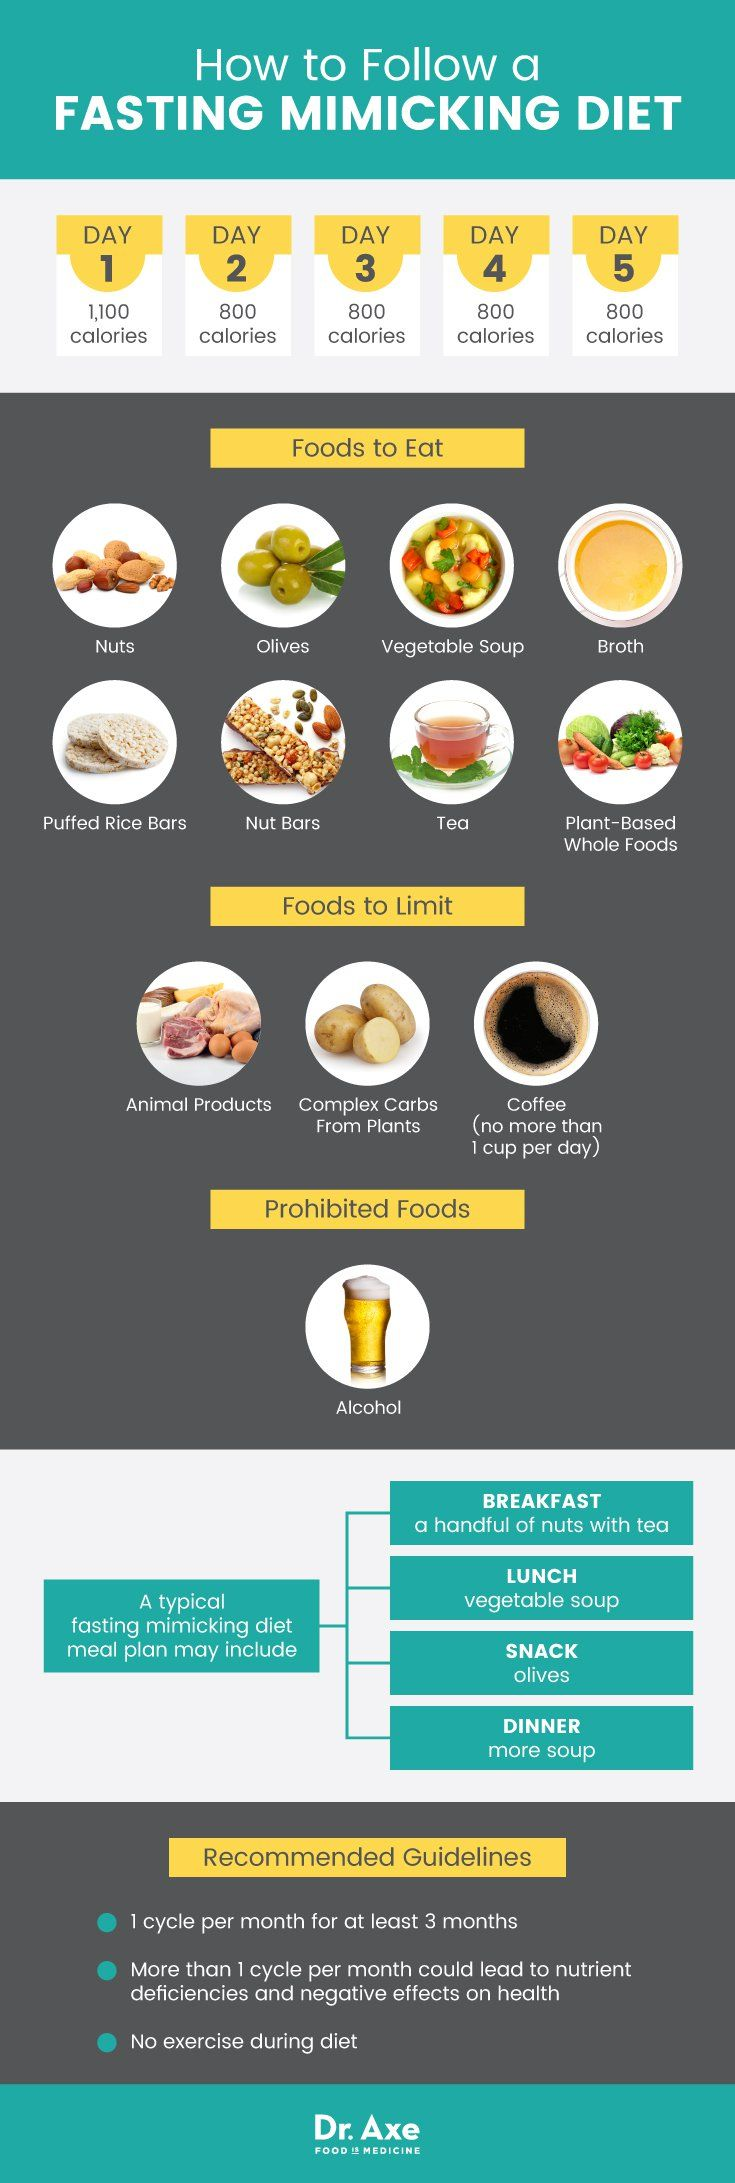 The Benefits of Intermittent Fasting - DrAxe com   food